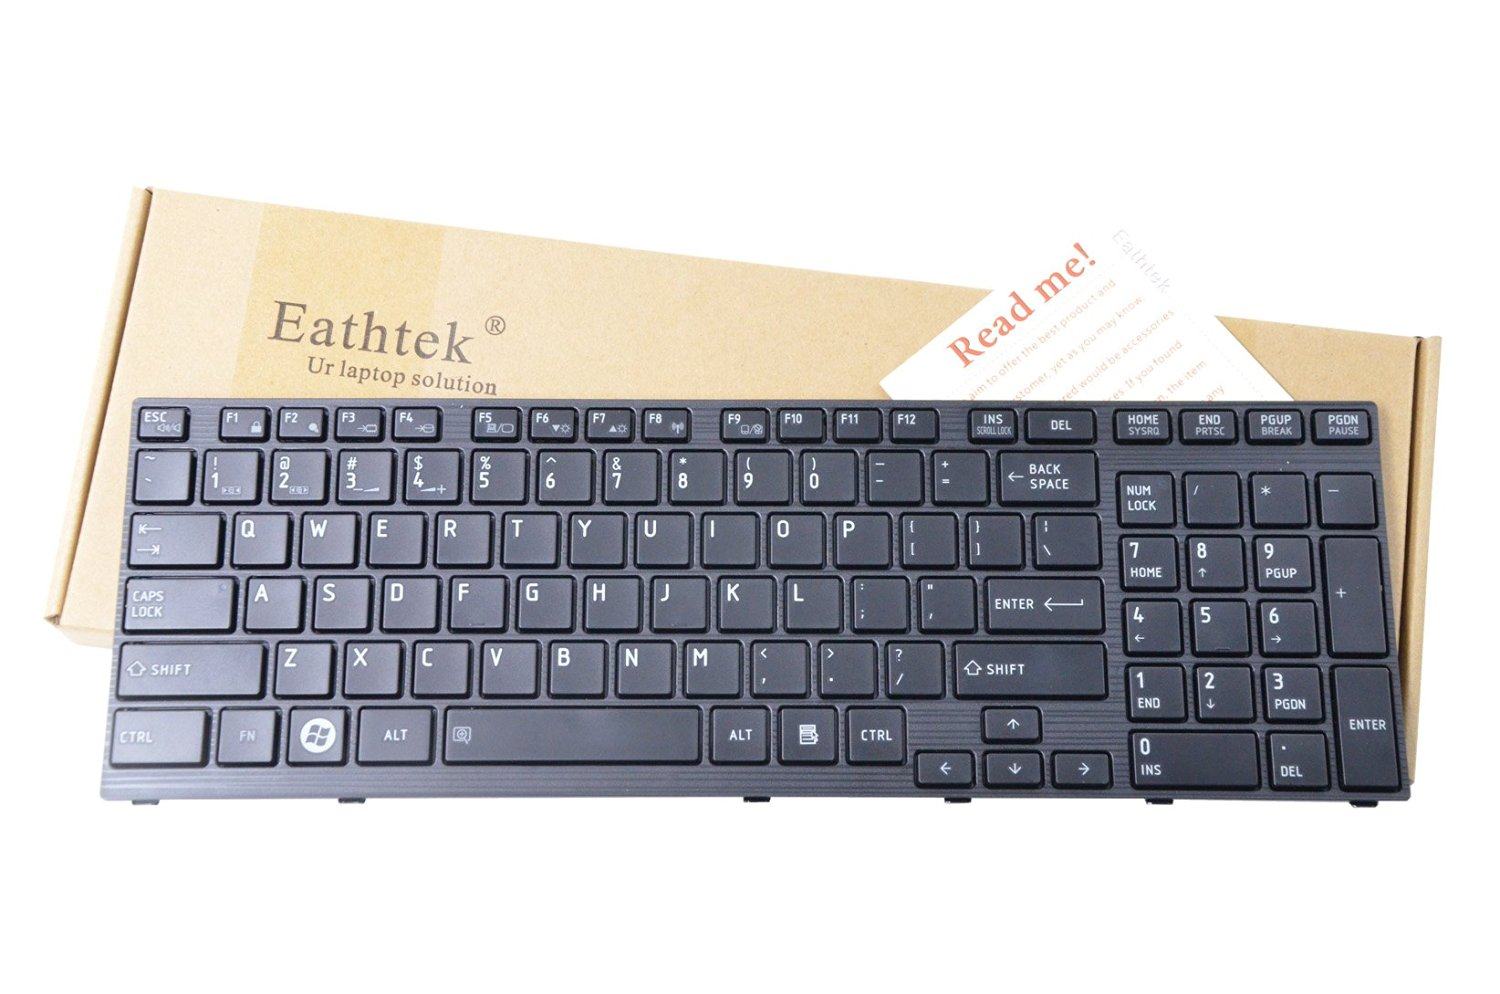 Eathtek Laptop Replacement Keyboard for Toshiba Satellite A660 A665 A660D A665D series Black US Layout